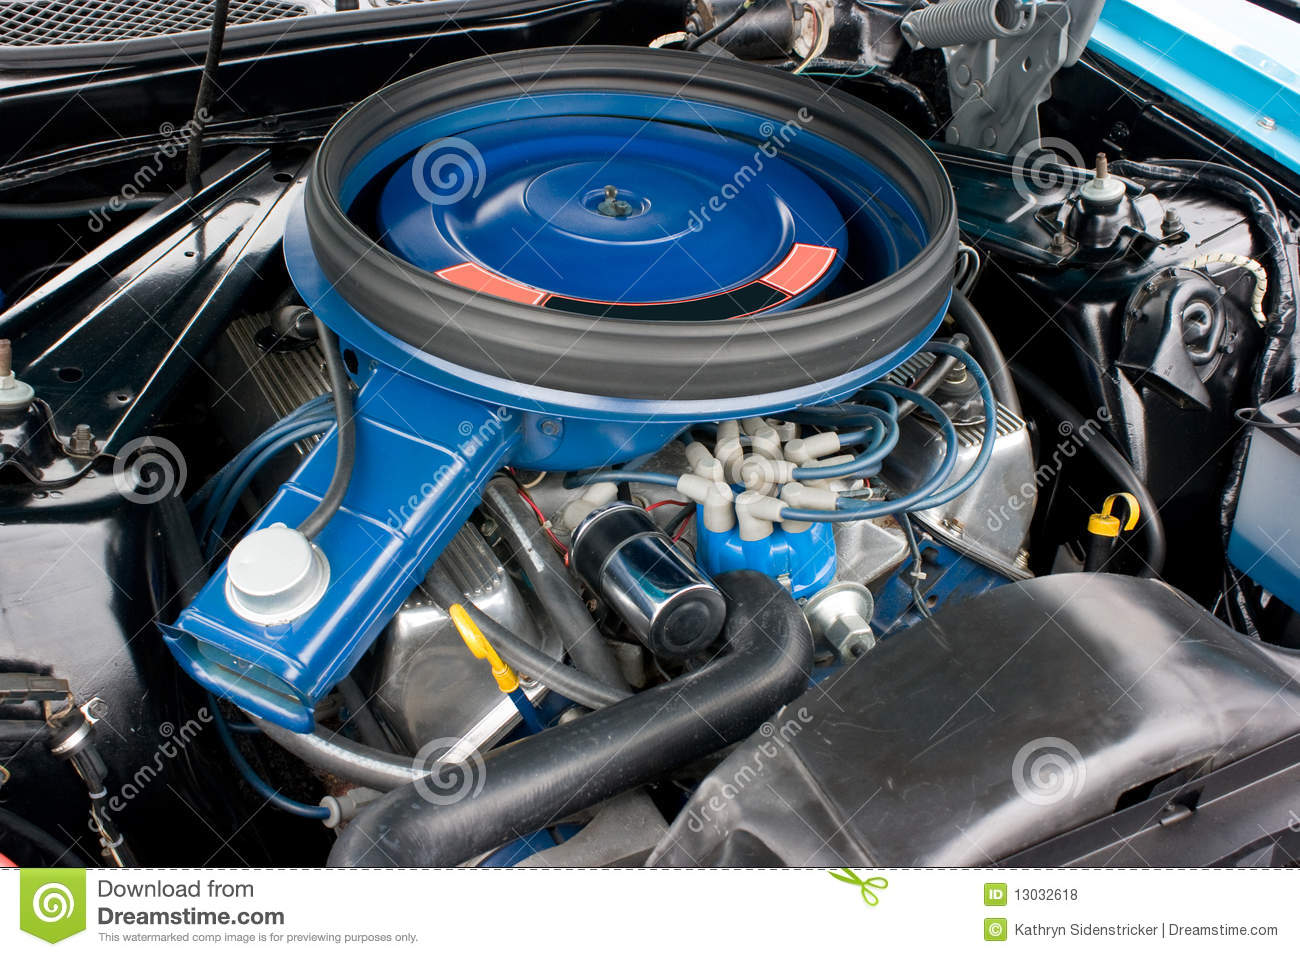 1971 ford mustang 8 cylinder engine 351c 13032618 1971 ford mustang 8 cylinder engine 351c royalty free stock photos  at gsmx.co